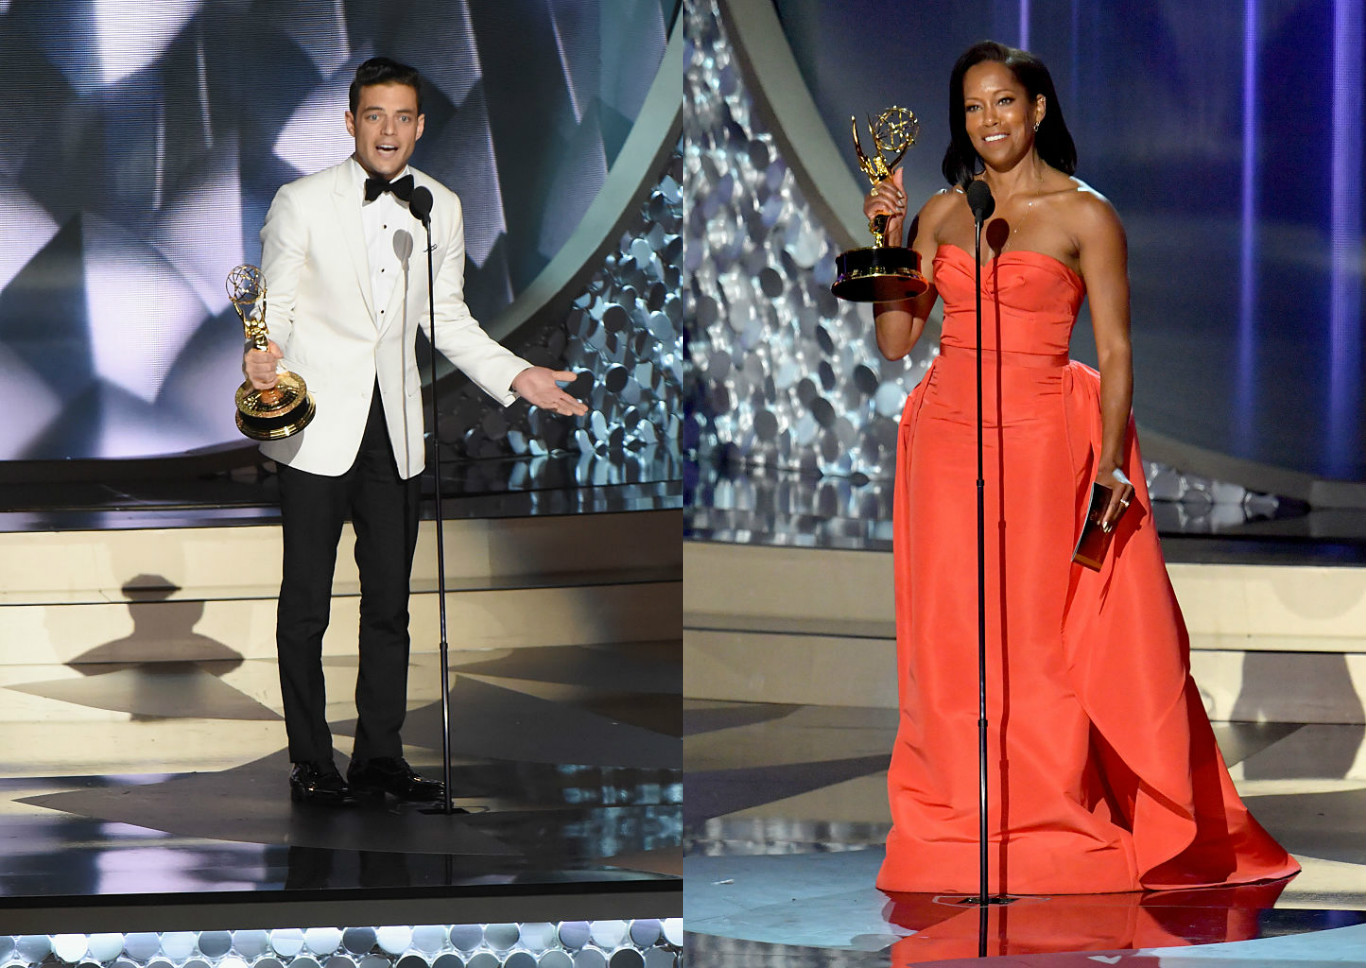 The diversity at this year's Emmys was a big deal, and people are thrilled